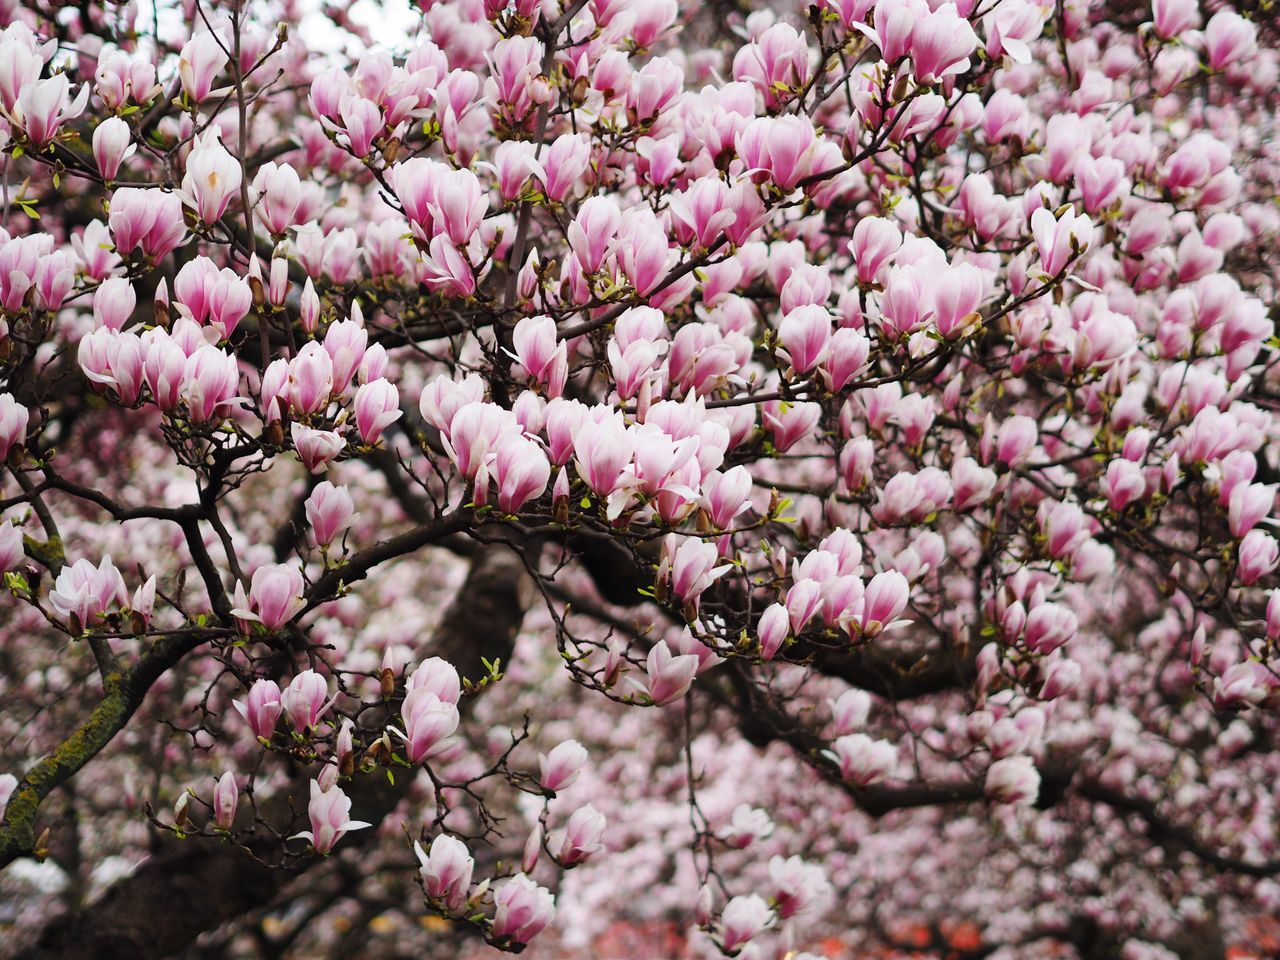 Beautiful stock photos of magnolie, Magnolia, abundance, backgrounds, beauty In Nature